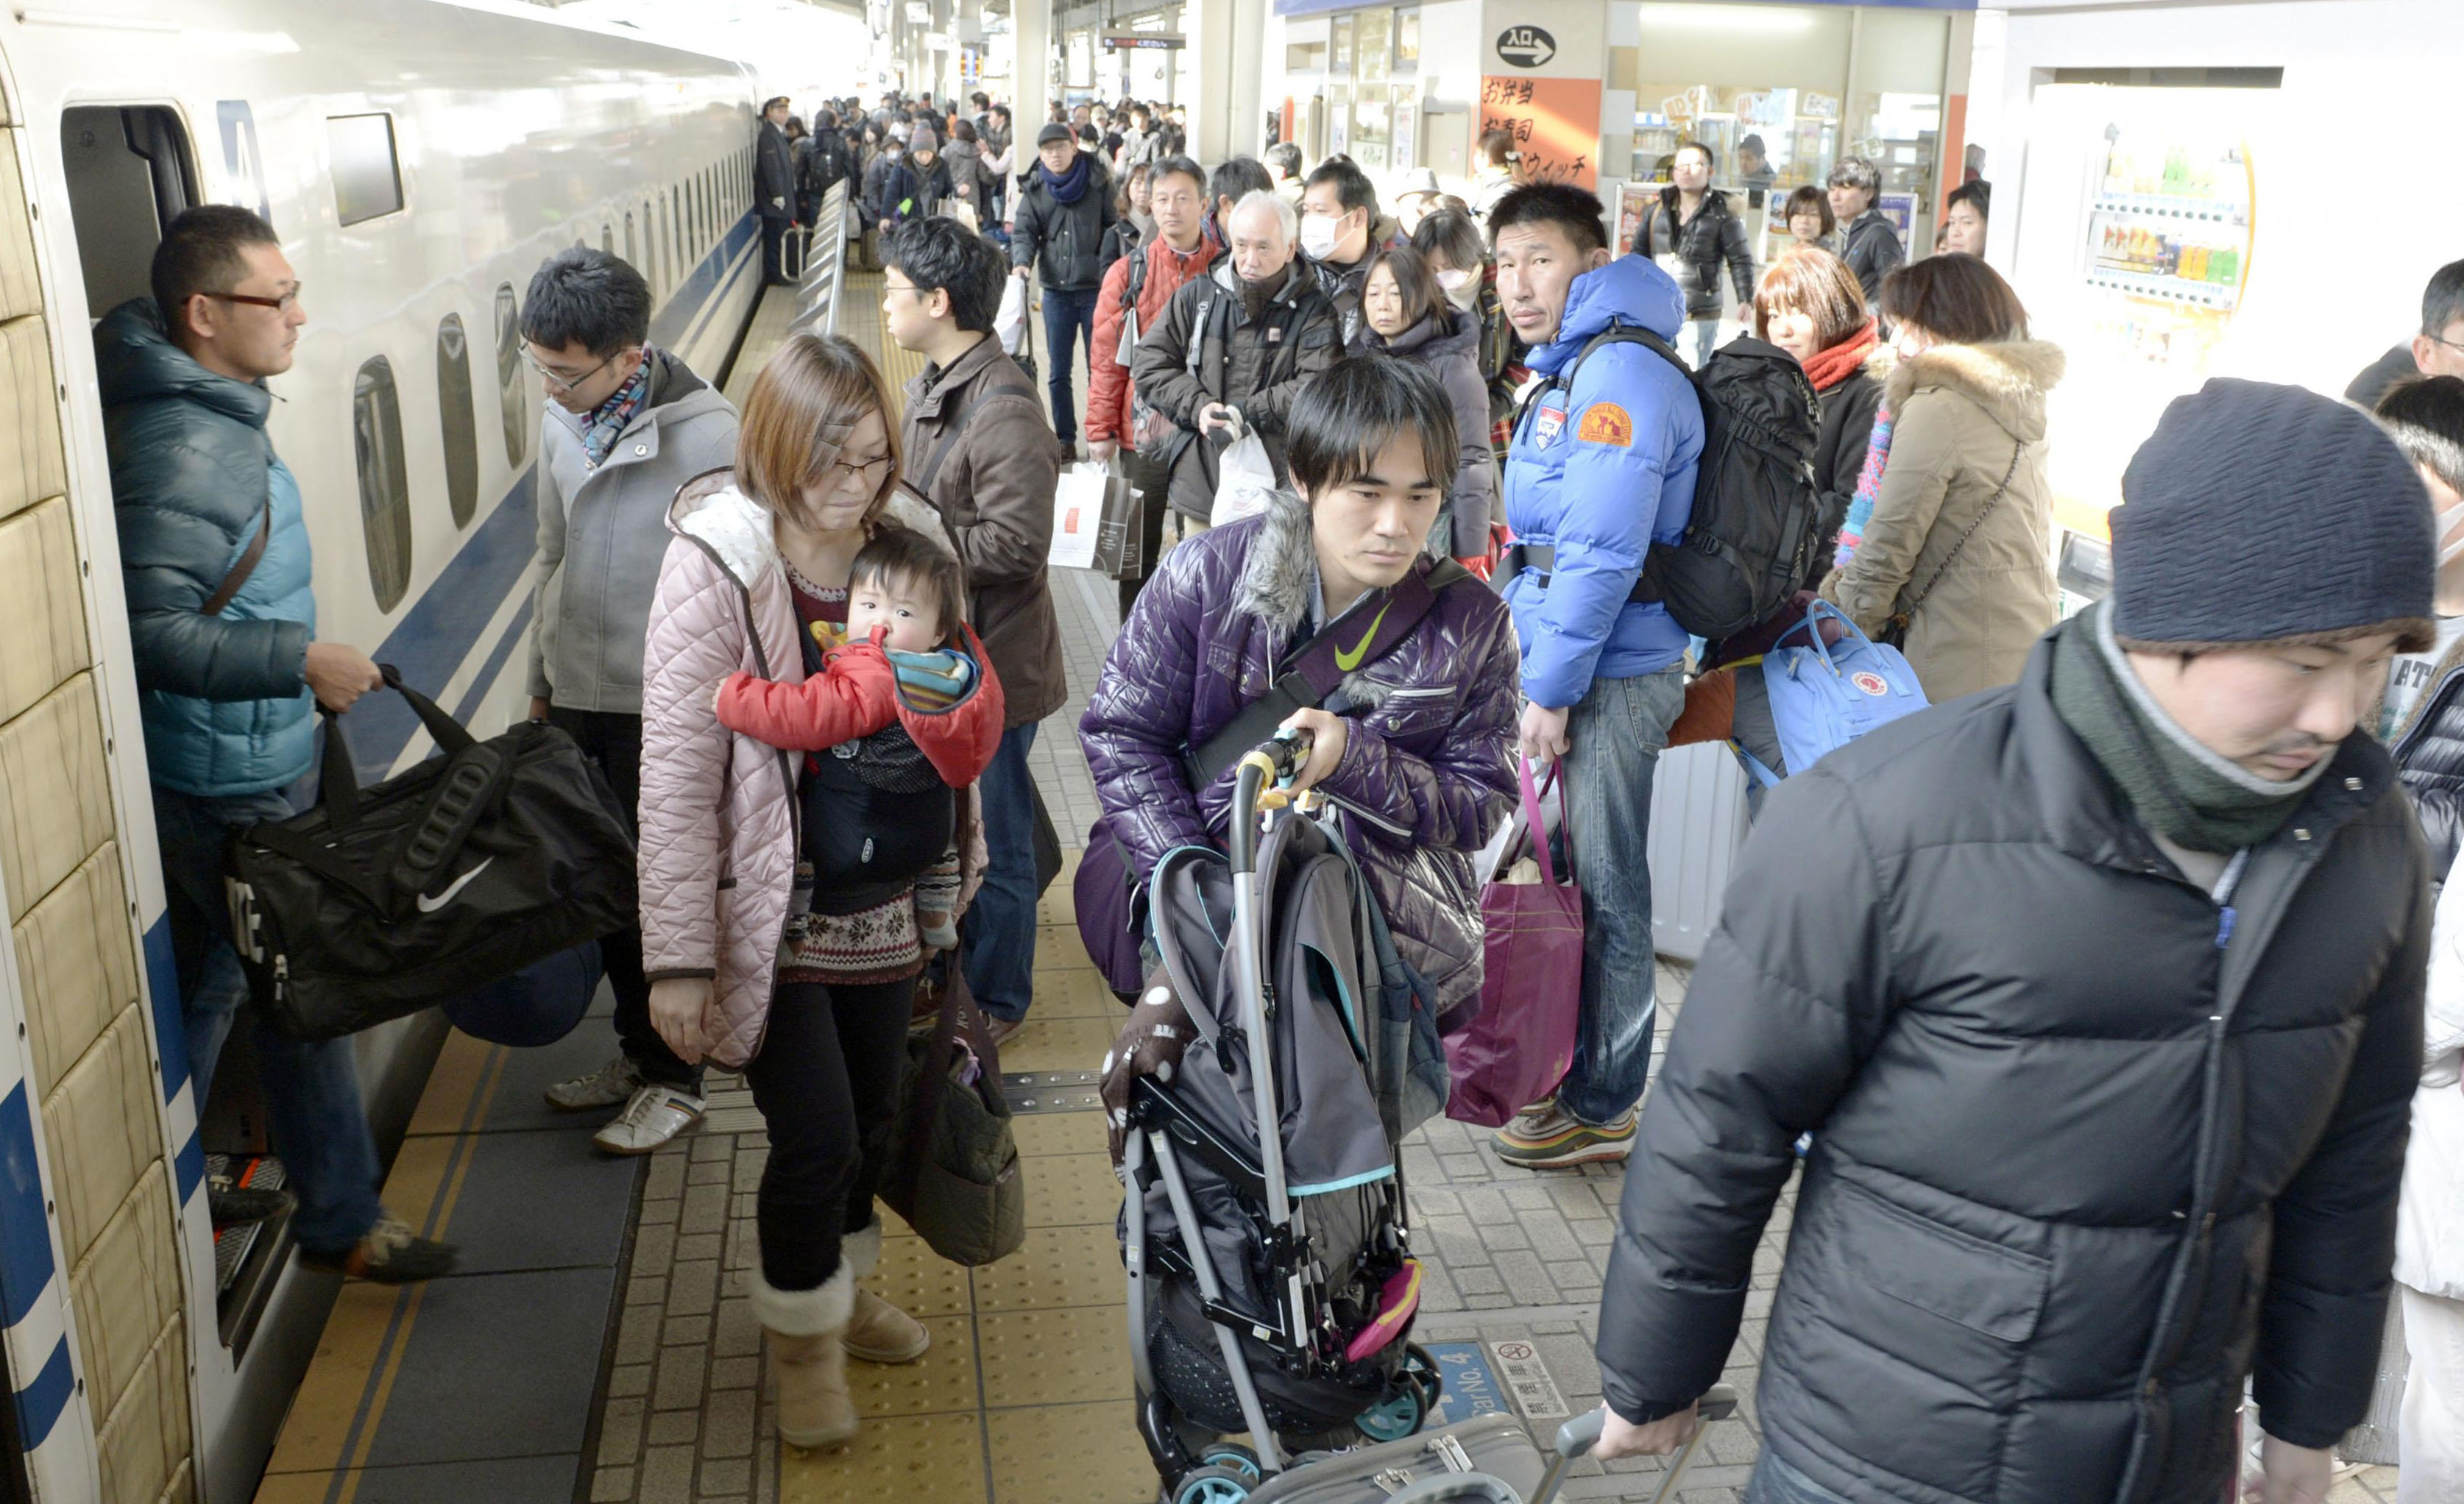 Rushing back: Travelers crowd a shinkansen platform at JR Shin-Osaka Station on Thursday as the U-turn rush peaked. | KYODO